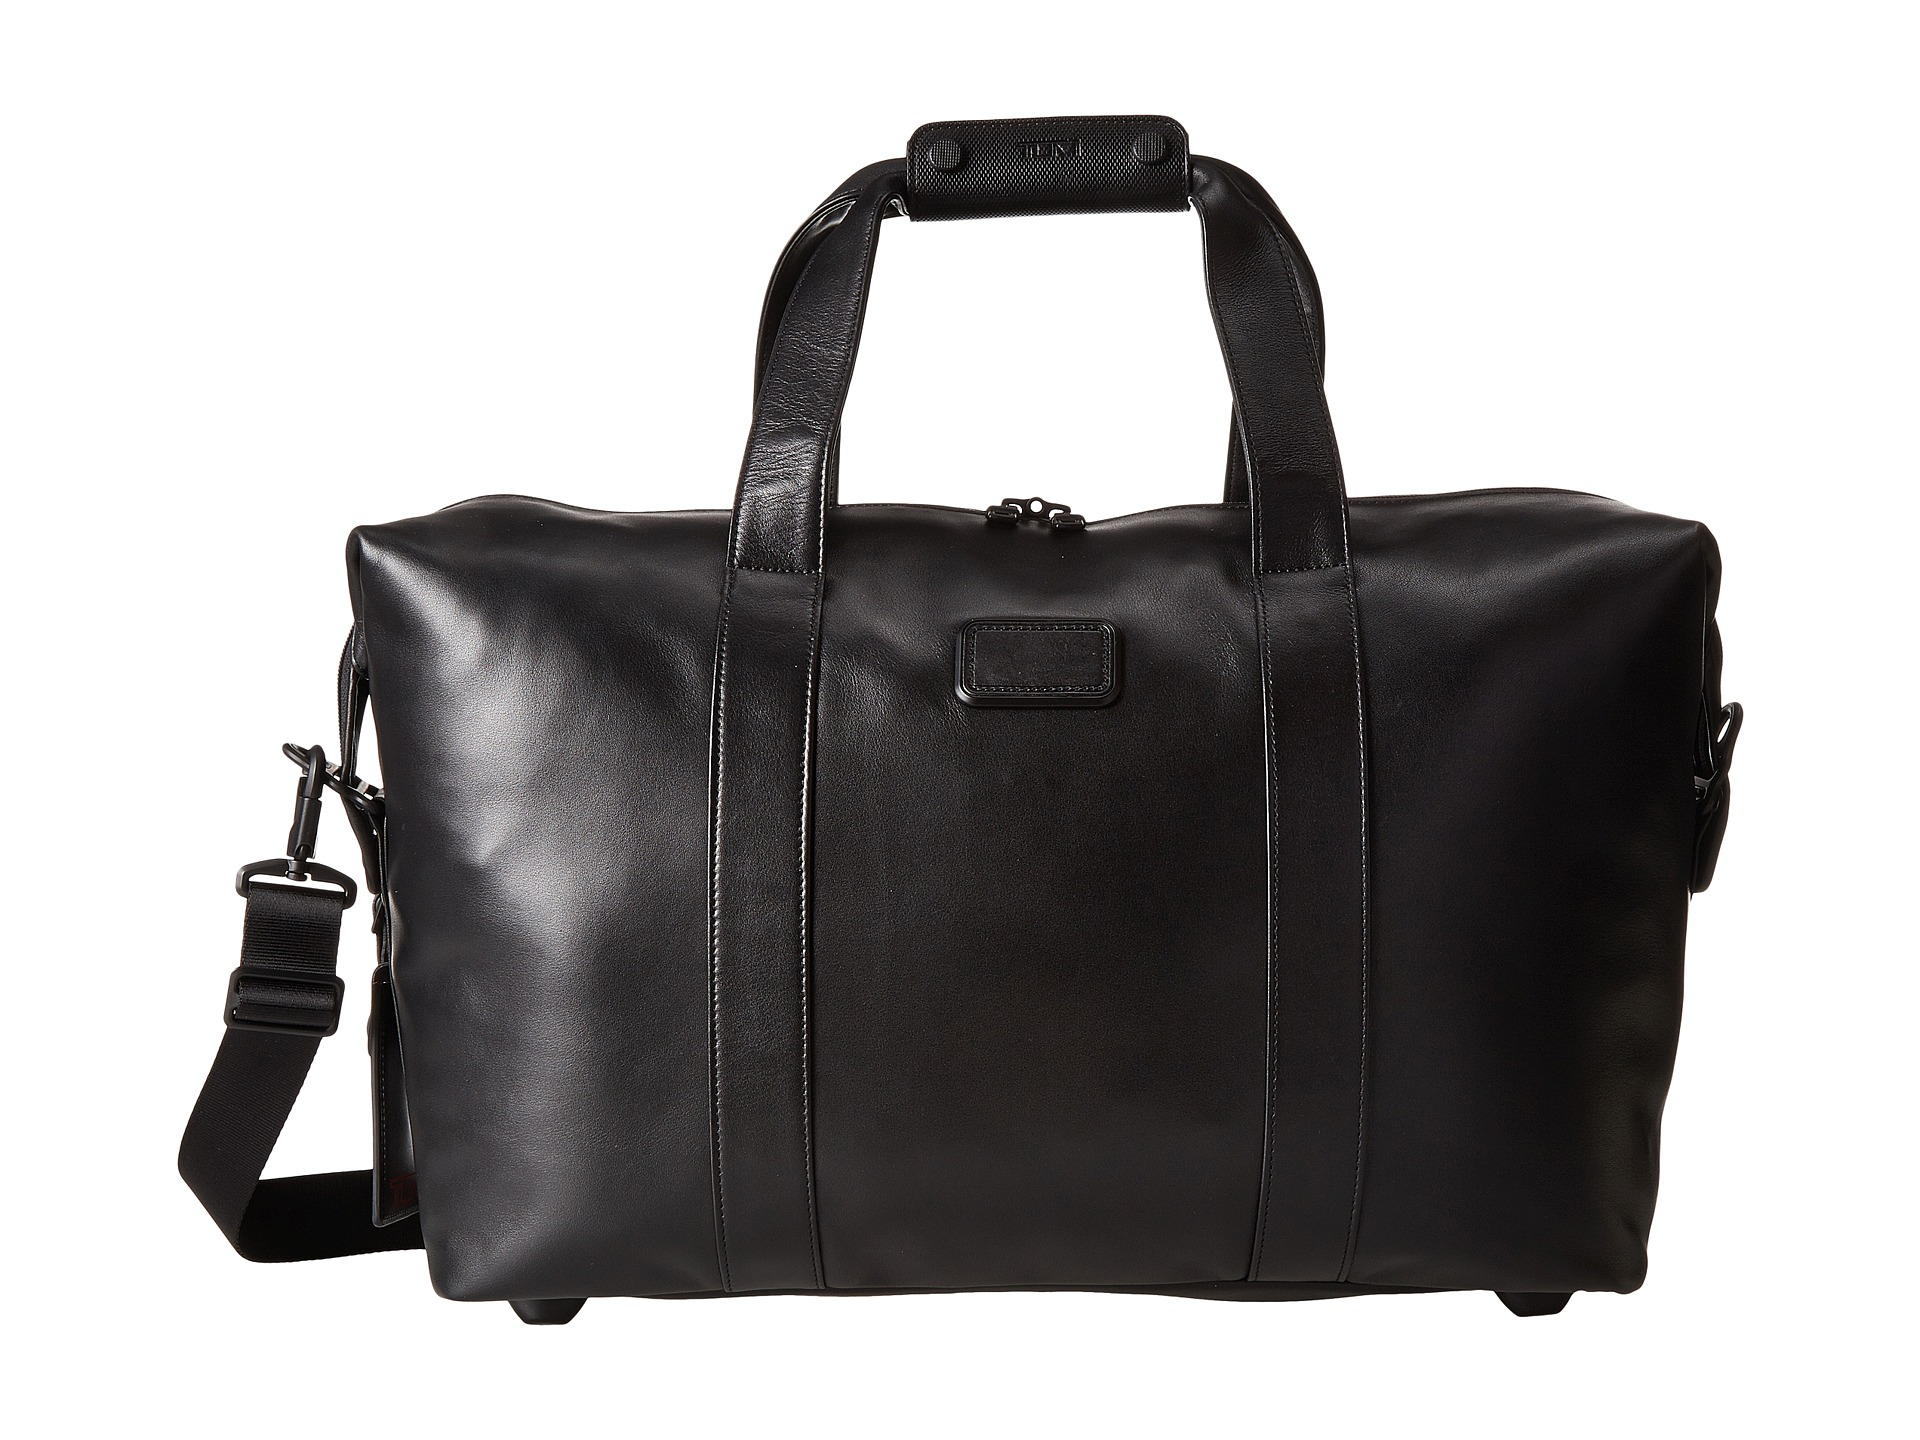 Lyst - Tumi Alpha 2 - Small Soft Leather Travel Satchel in Black for Men 48ed5ae587e56